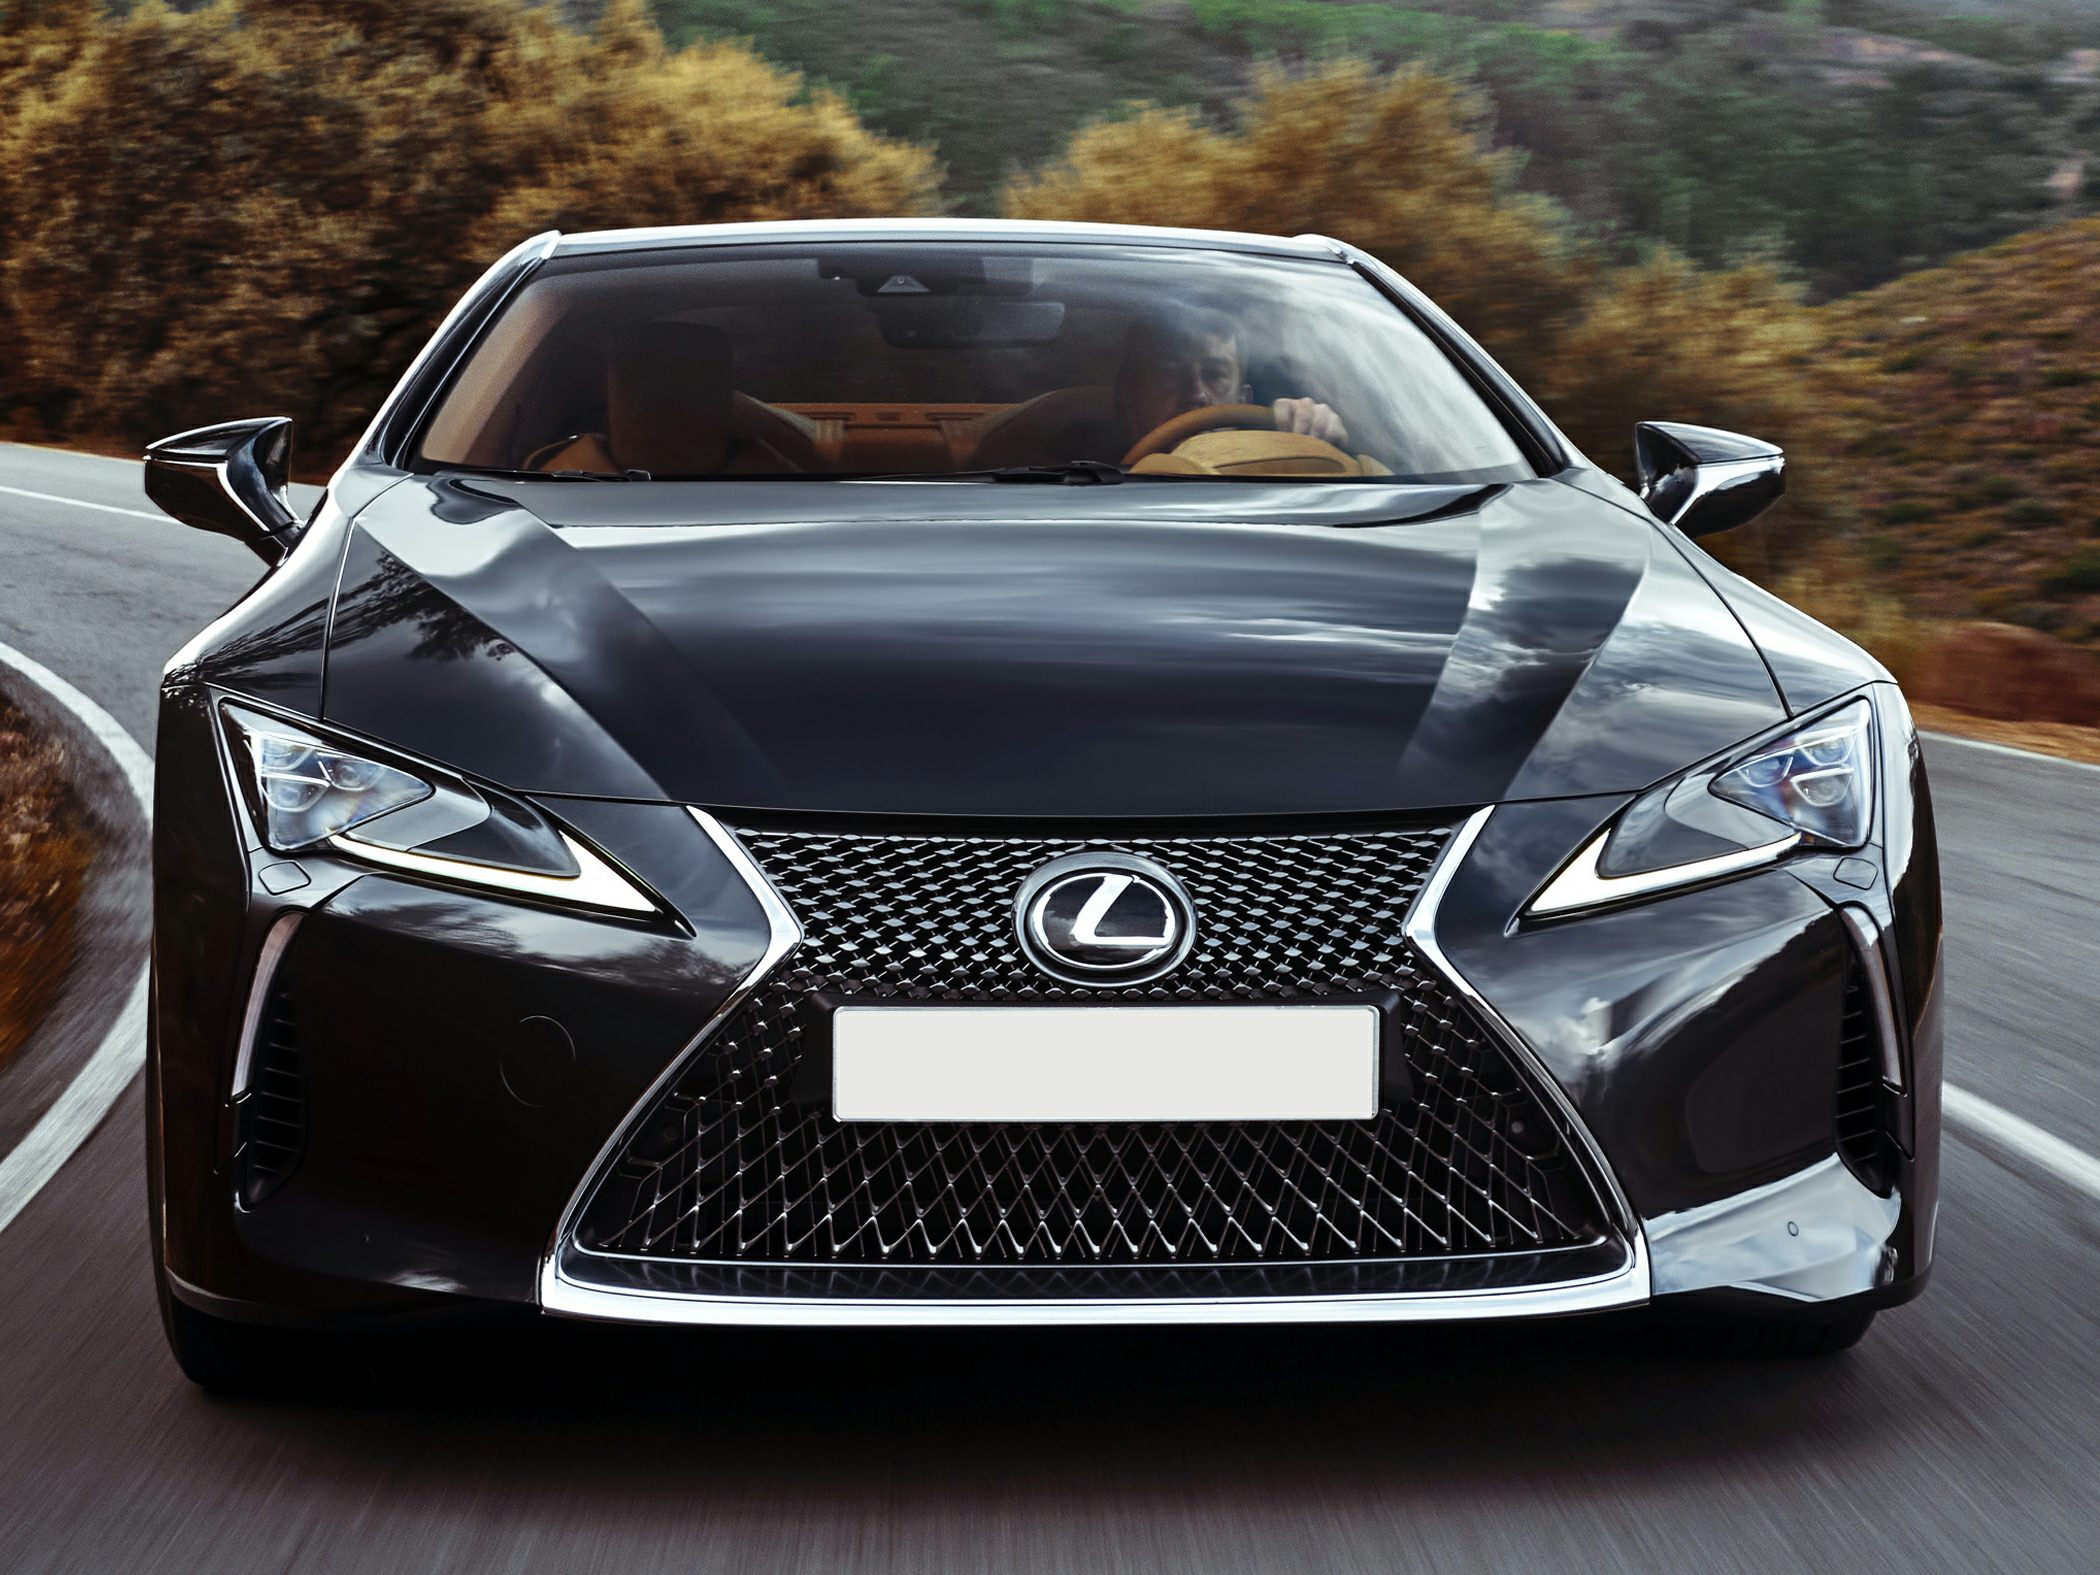 2018 Lexus LC 500 Reviews, Specs and Prices | Cars.com